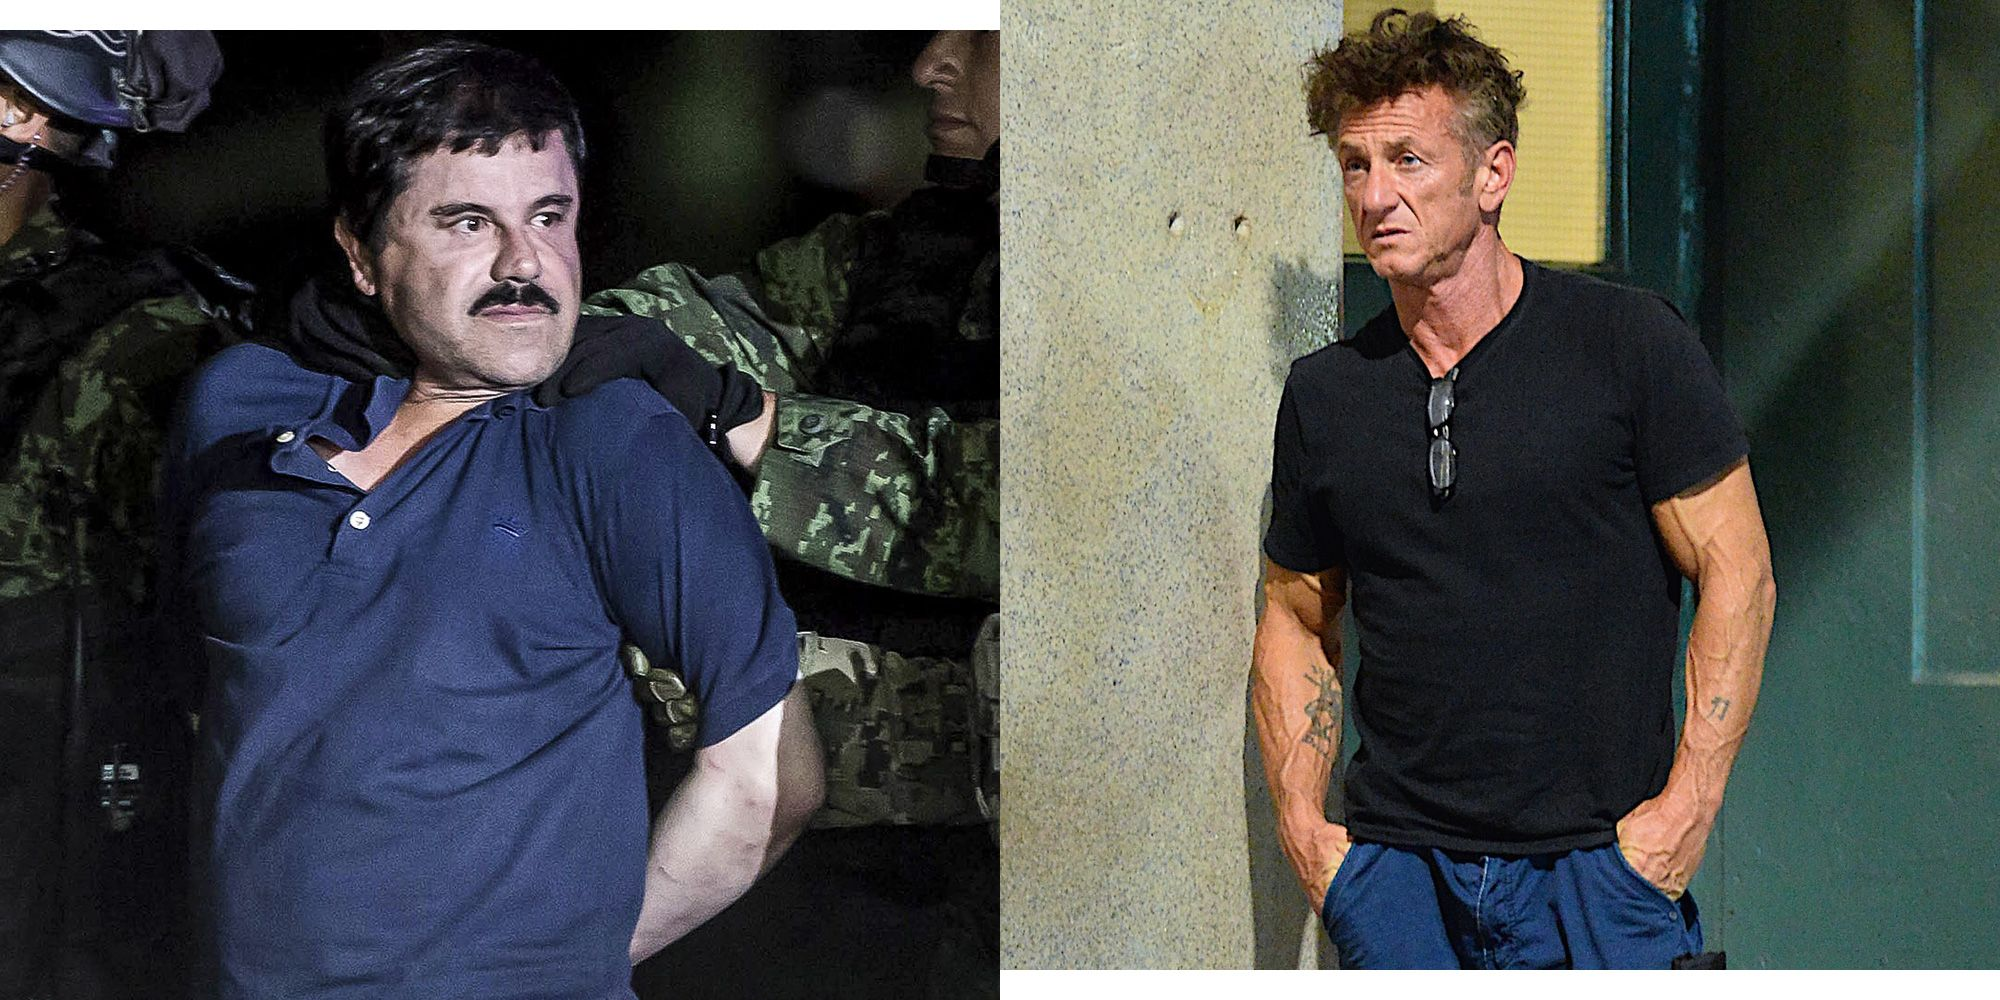 Sean Penn El Chapo Documentary Feud - Producer Says Penn's Life Isn't in  Danger